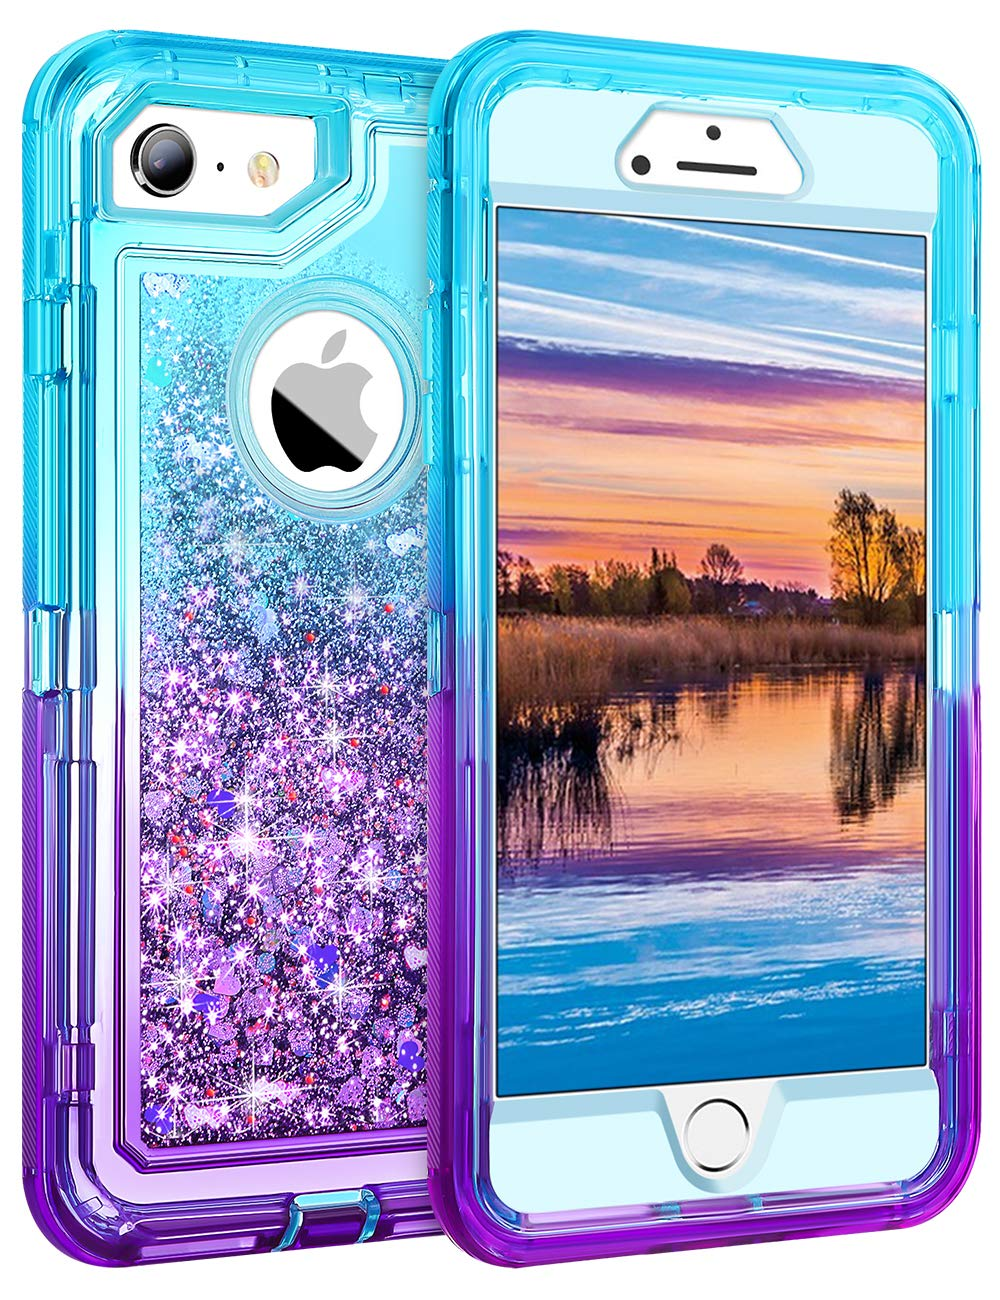 Coolden Case for iPhone 6S Plus Case Protective Glitter Case for Women Girls Cute Bling Sparkle Heavy Duty Hard Shell Shockproof TPU Case for 5.5 Inches iPhone 6 Plus 7 Plus 8 Plus, Aqua Purple